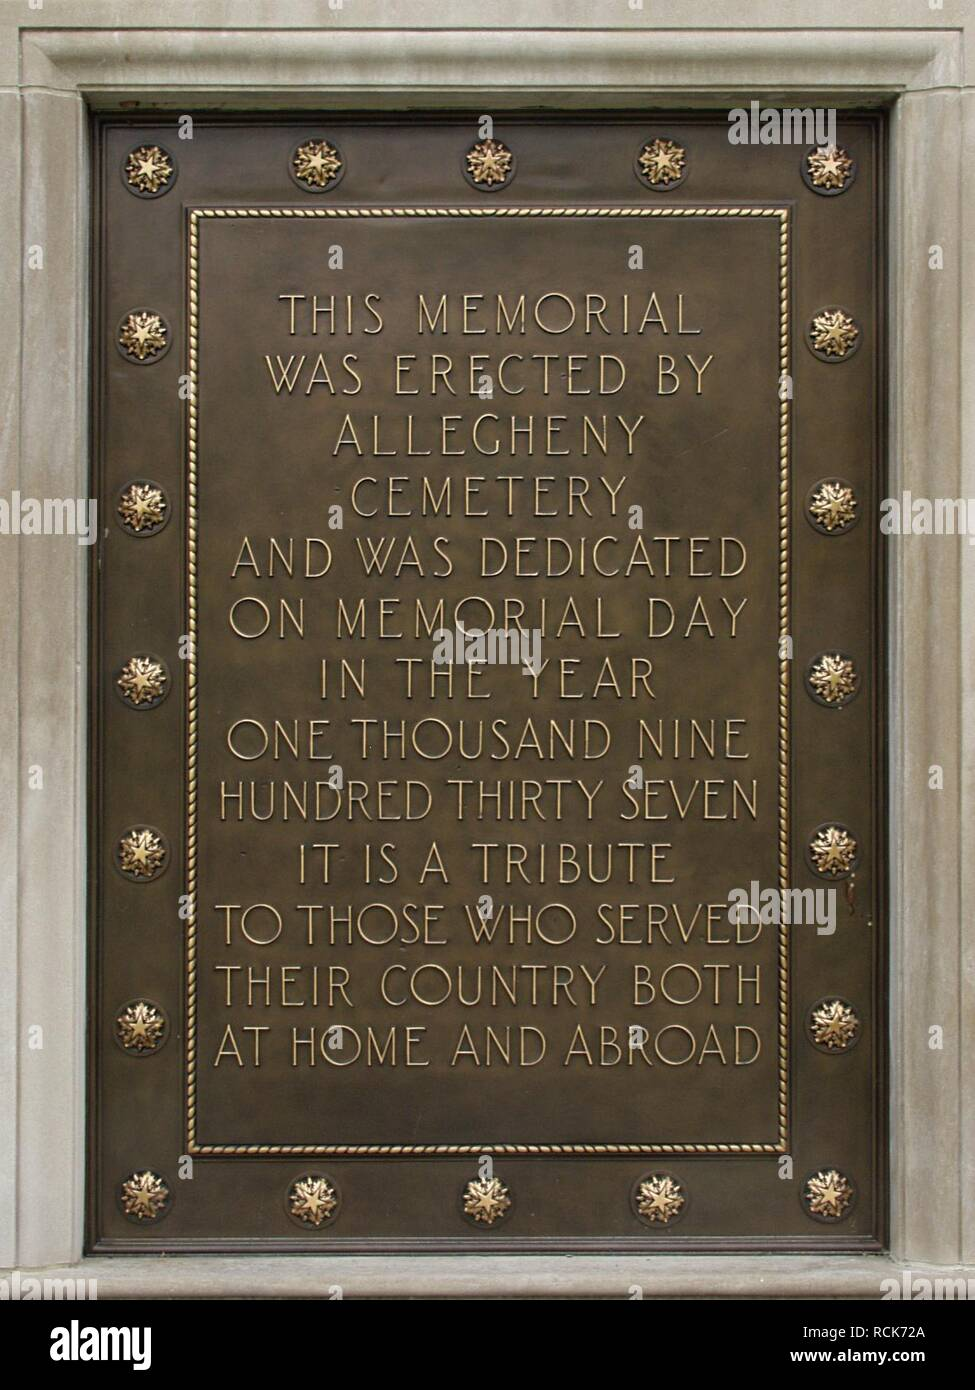 Allegheny Soldiers‥99 Memorial, Allegheny Cemetery, 2015-04-15, 02. Stock Photo